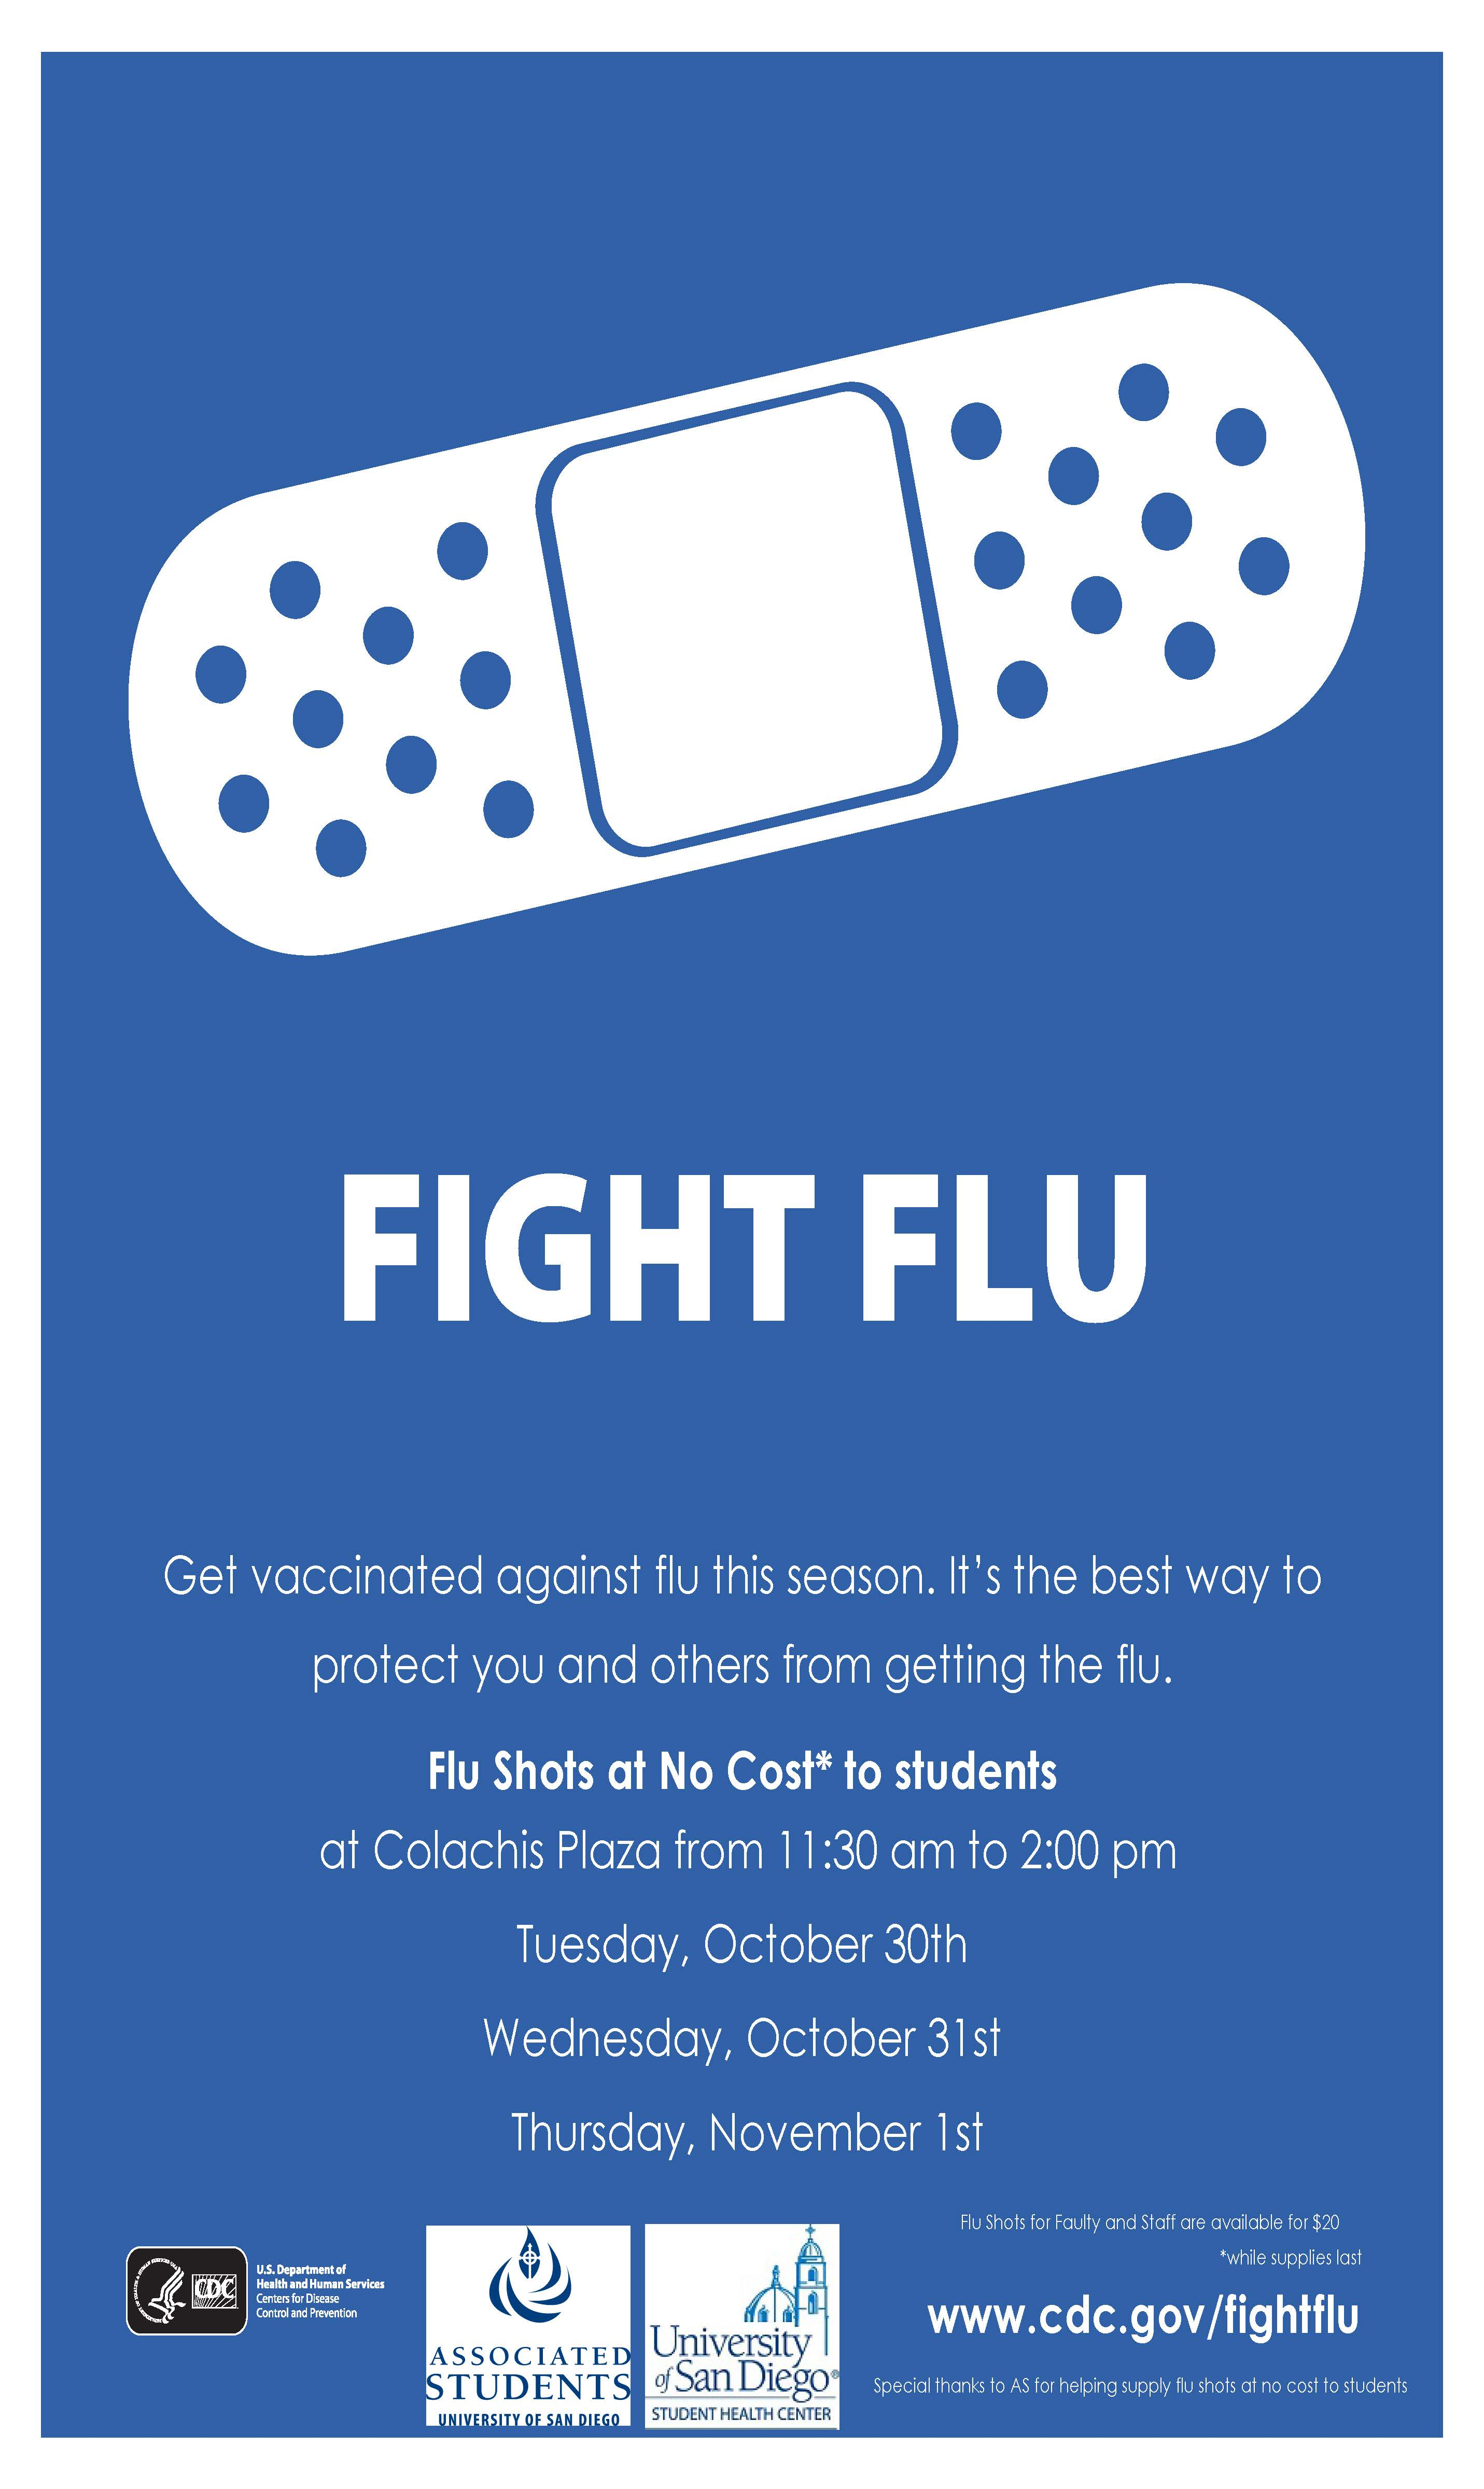 Get vaccinated against flu this season.  It's the best way to protect you and others from getting the flu.  Flu Shots at No Cost to Students at Colachis Plaza from 11:30am to 2:00 pm.